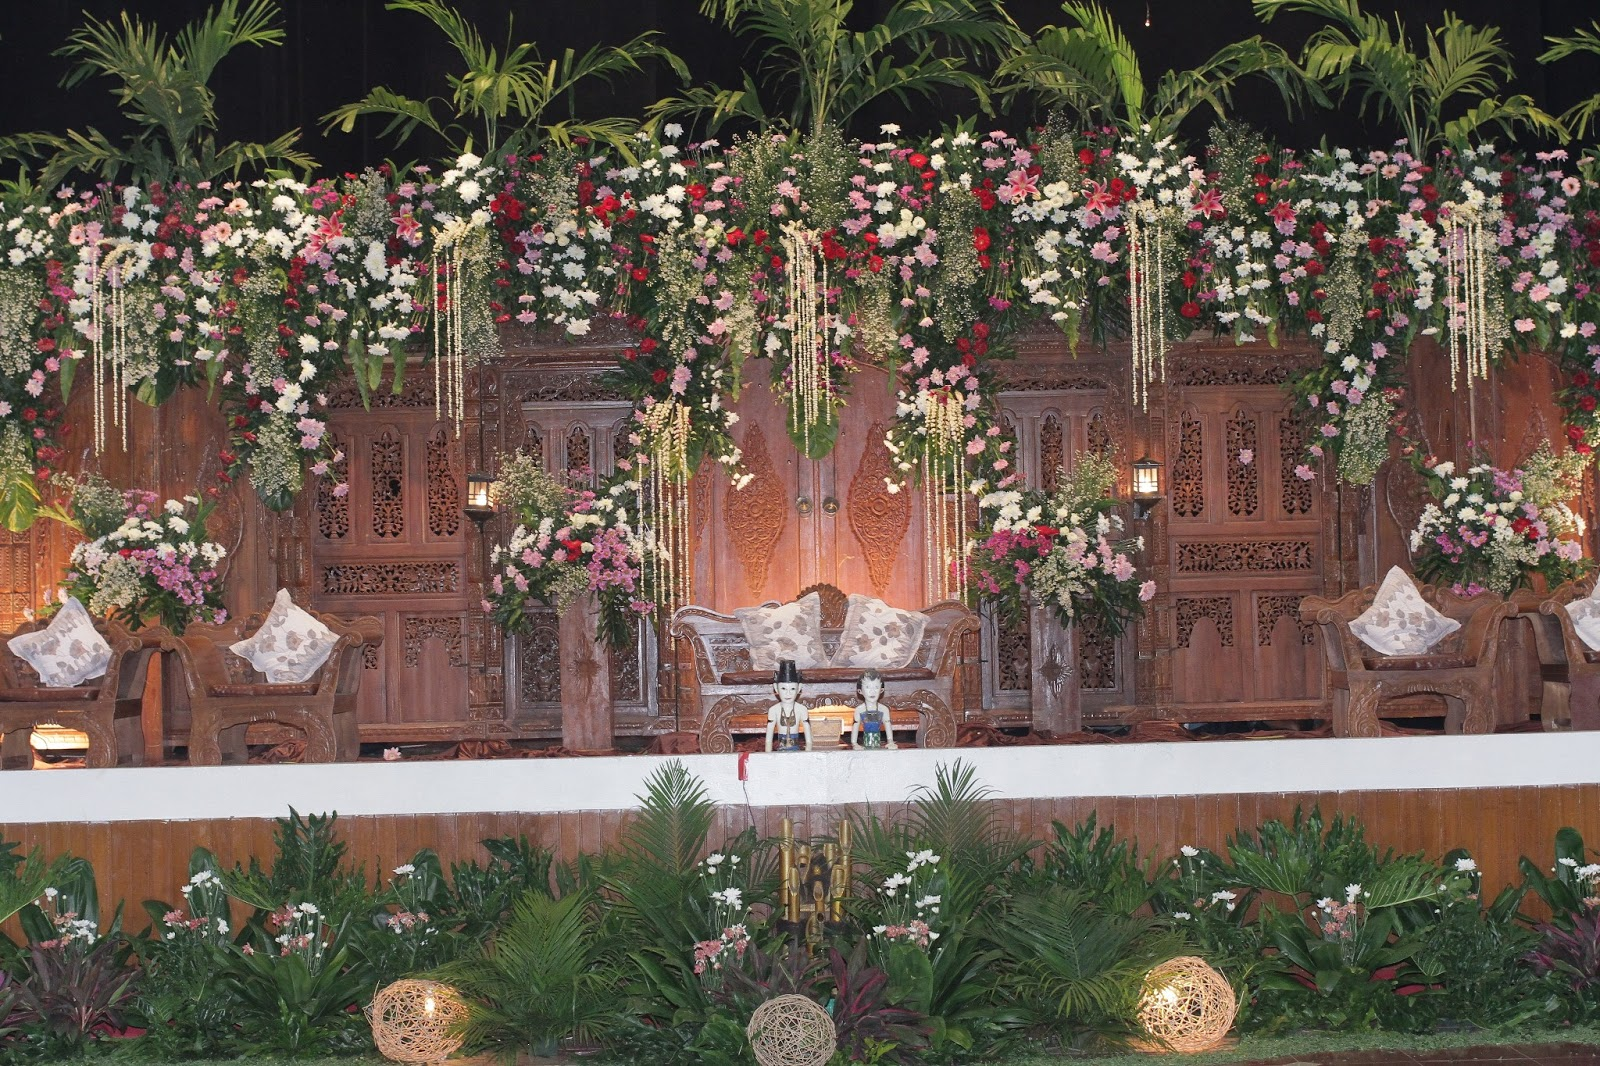 Wedding decorations yogyakarta wedding decorations yogyakarta wedding decorations junglespirit Choice Image